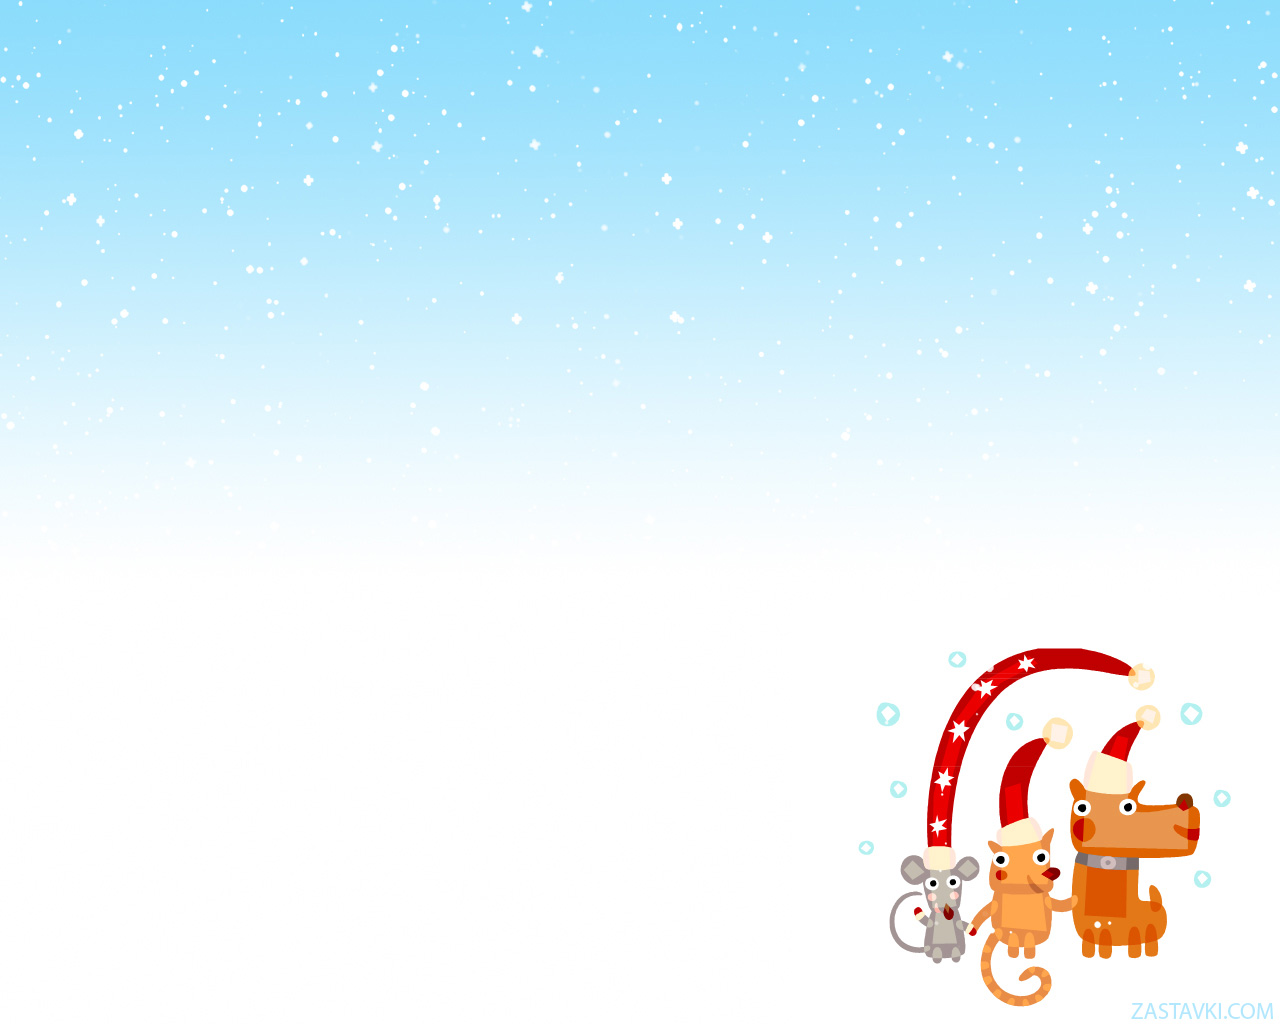 Download free animated Christmas background for MySpace.